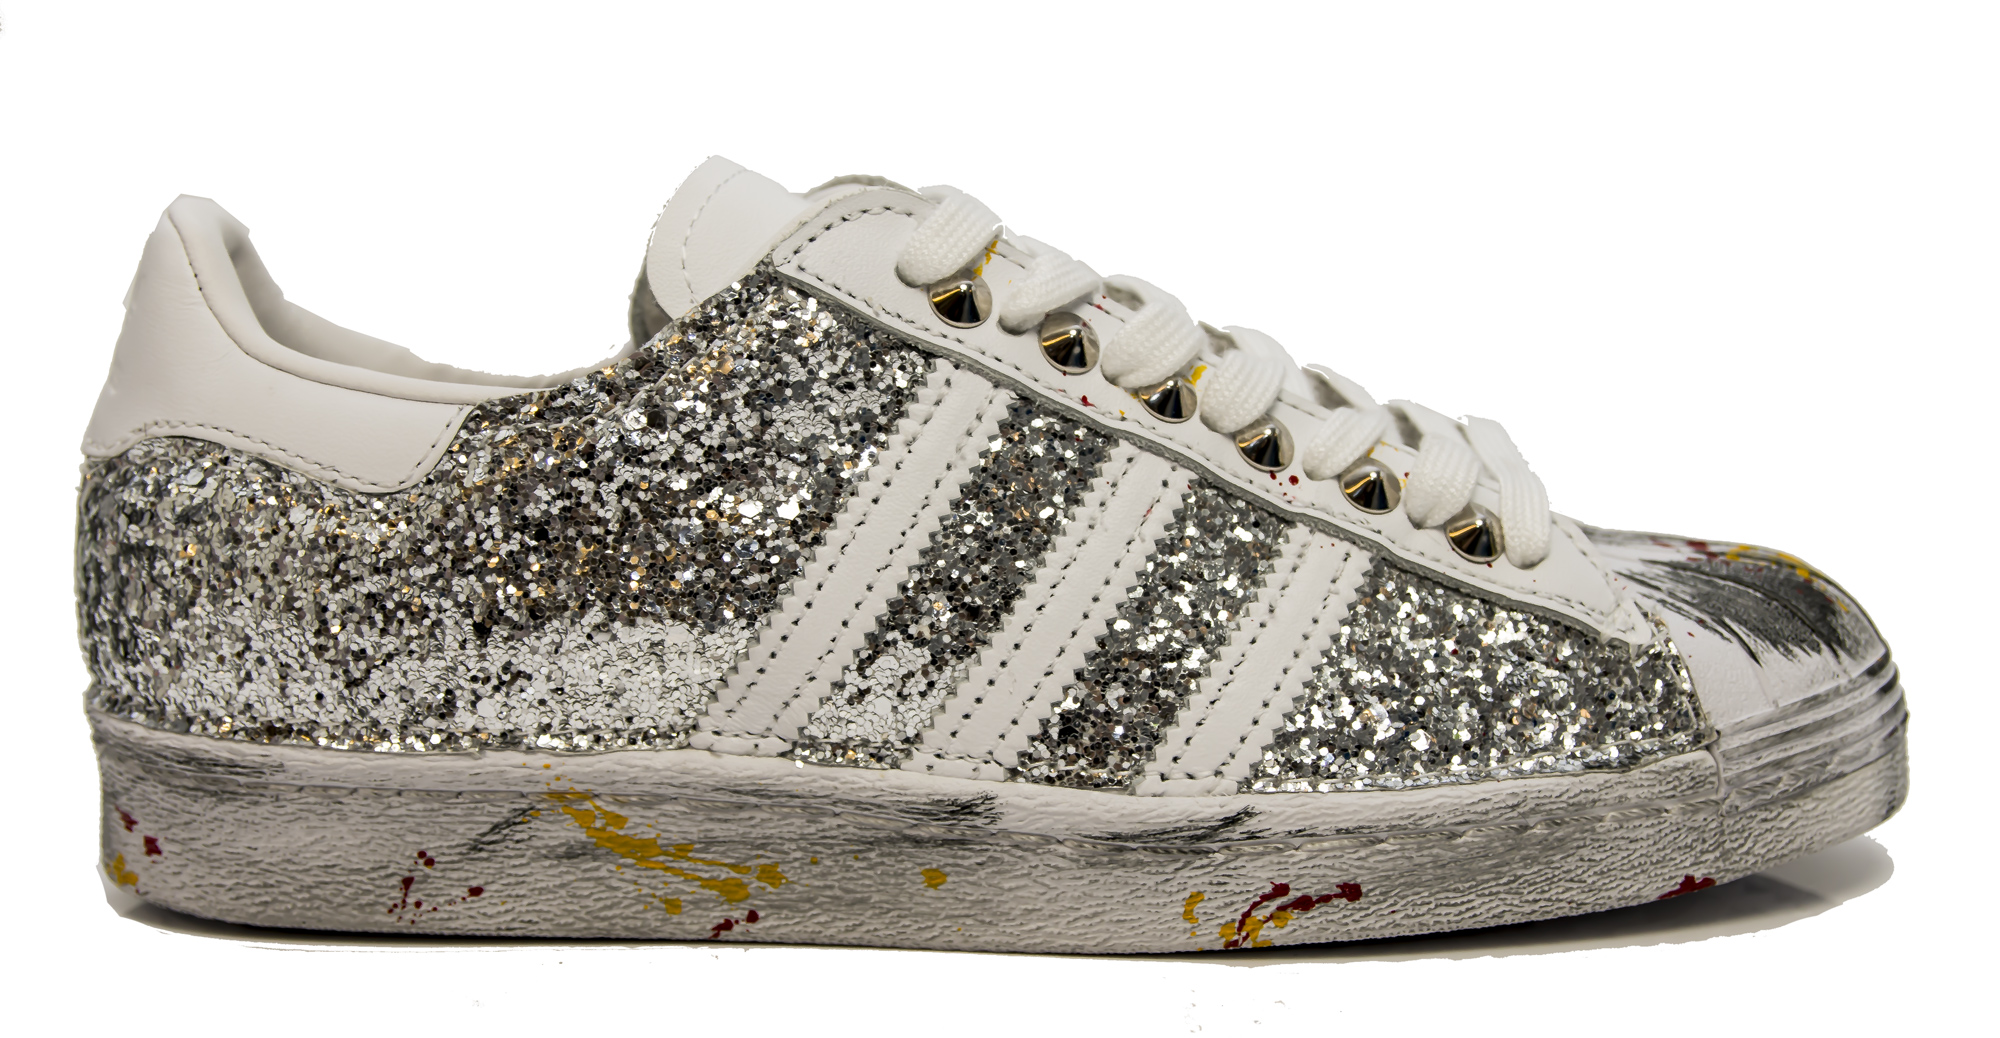 76daa2d5adb1c Sneakers Adidas Superstar ISTANBUL personalizzate in glitter argento e  borchie